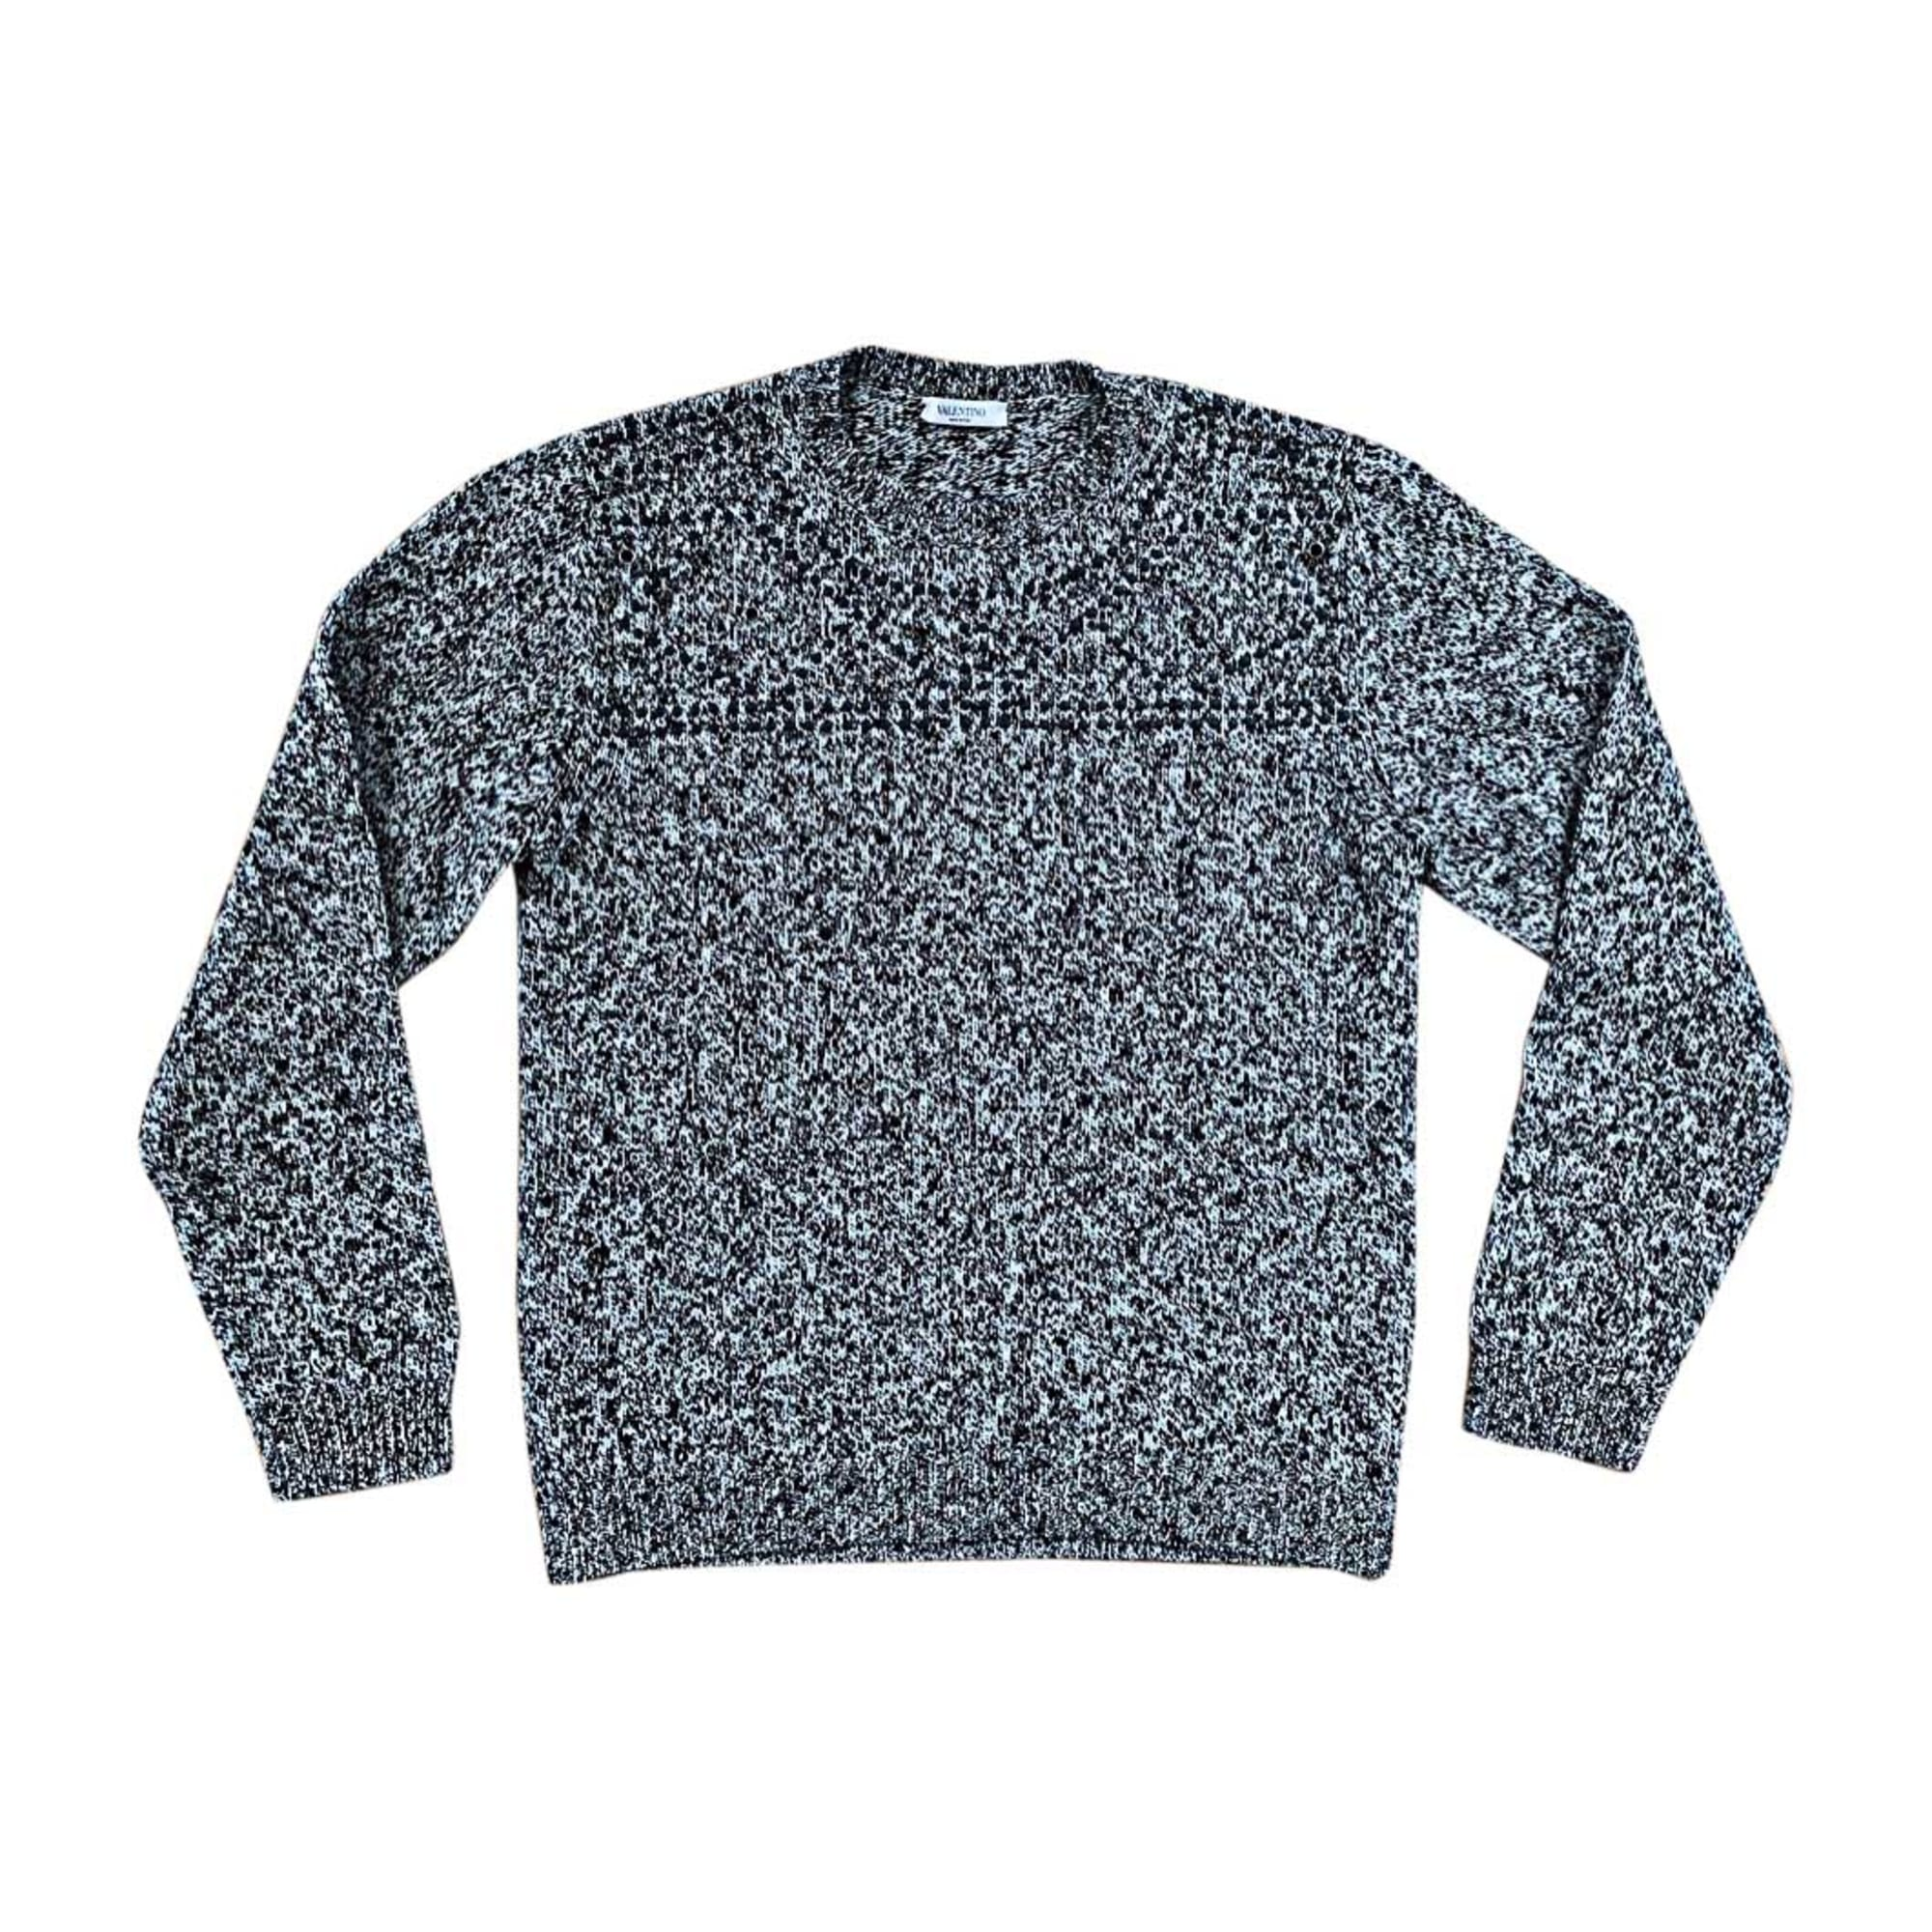 Sweater VALENTINO Gray, charcoal